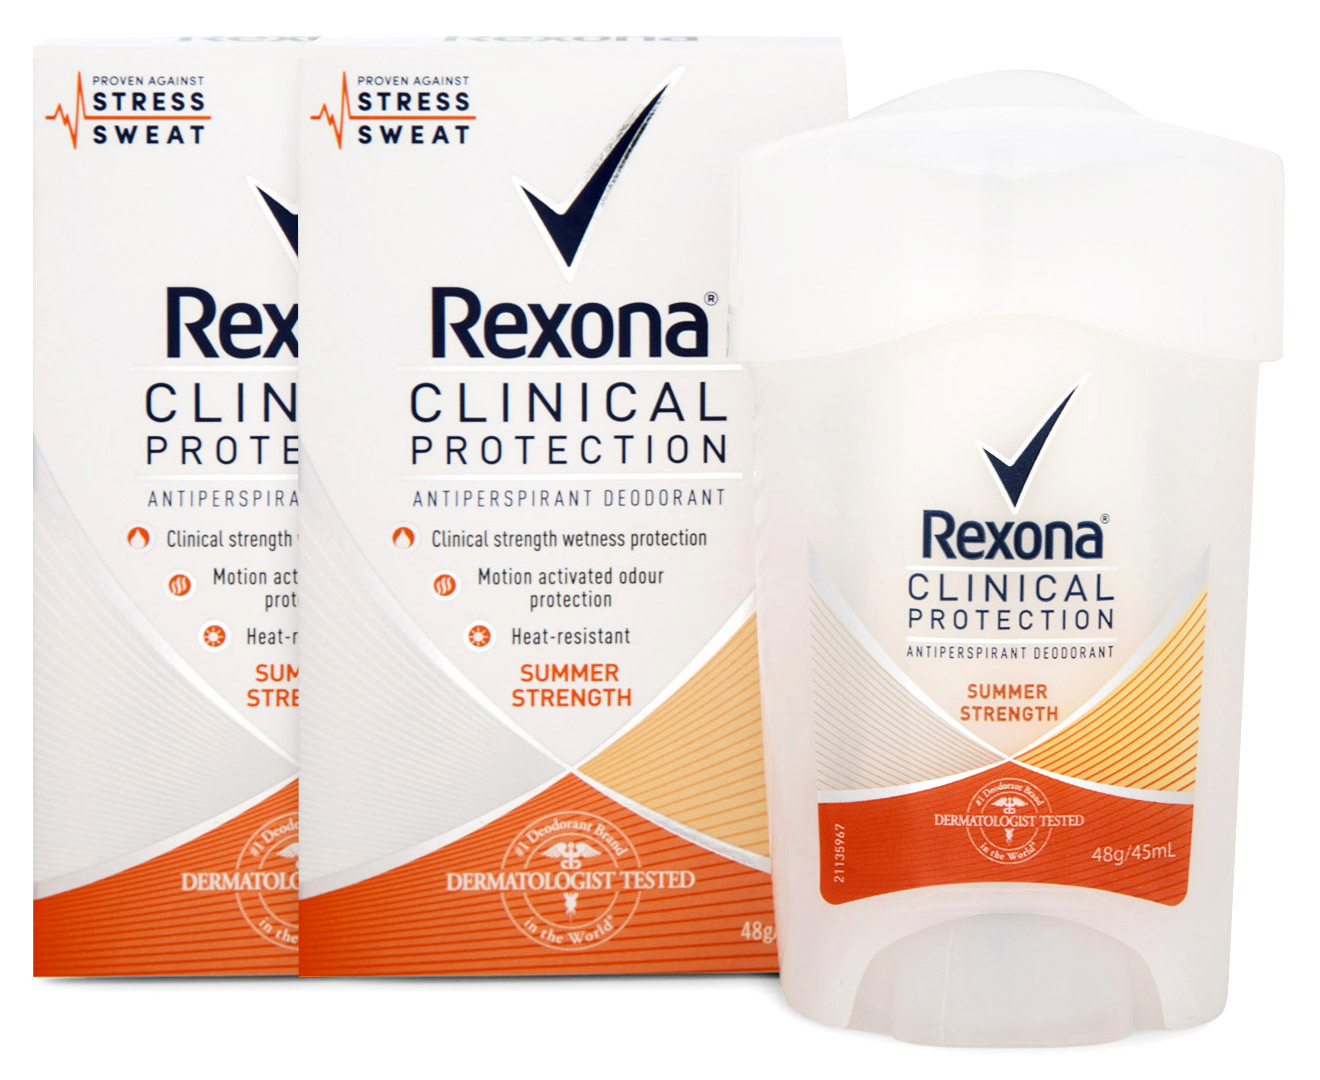 rexona clinical protection summer strength review